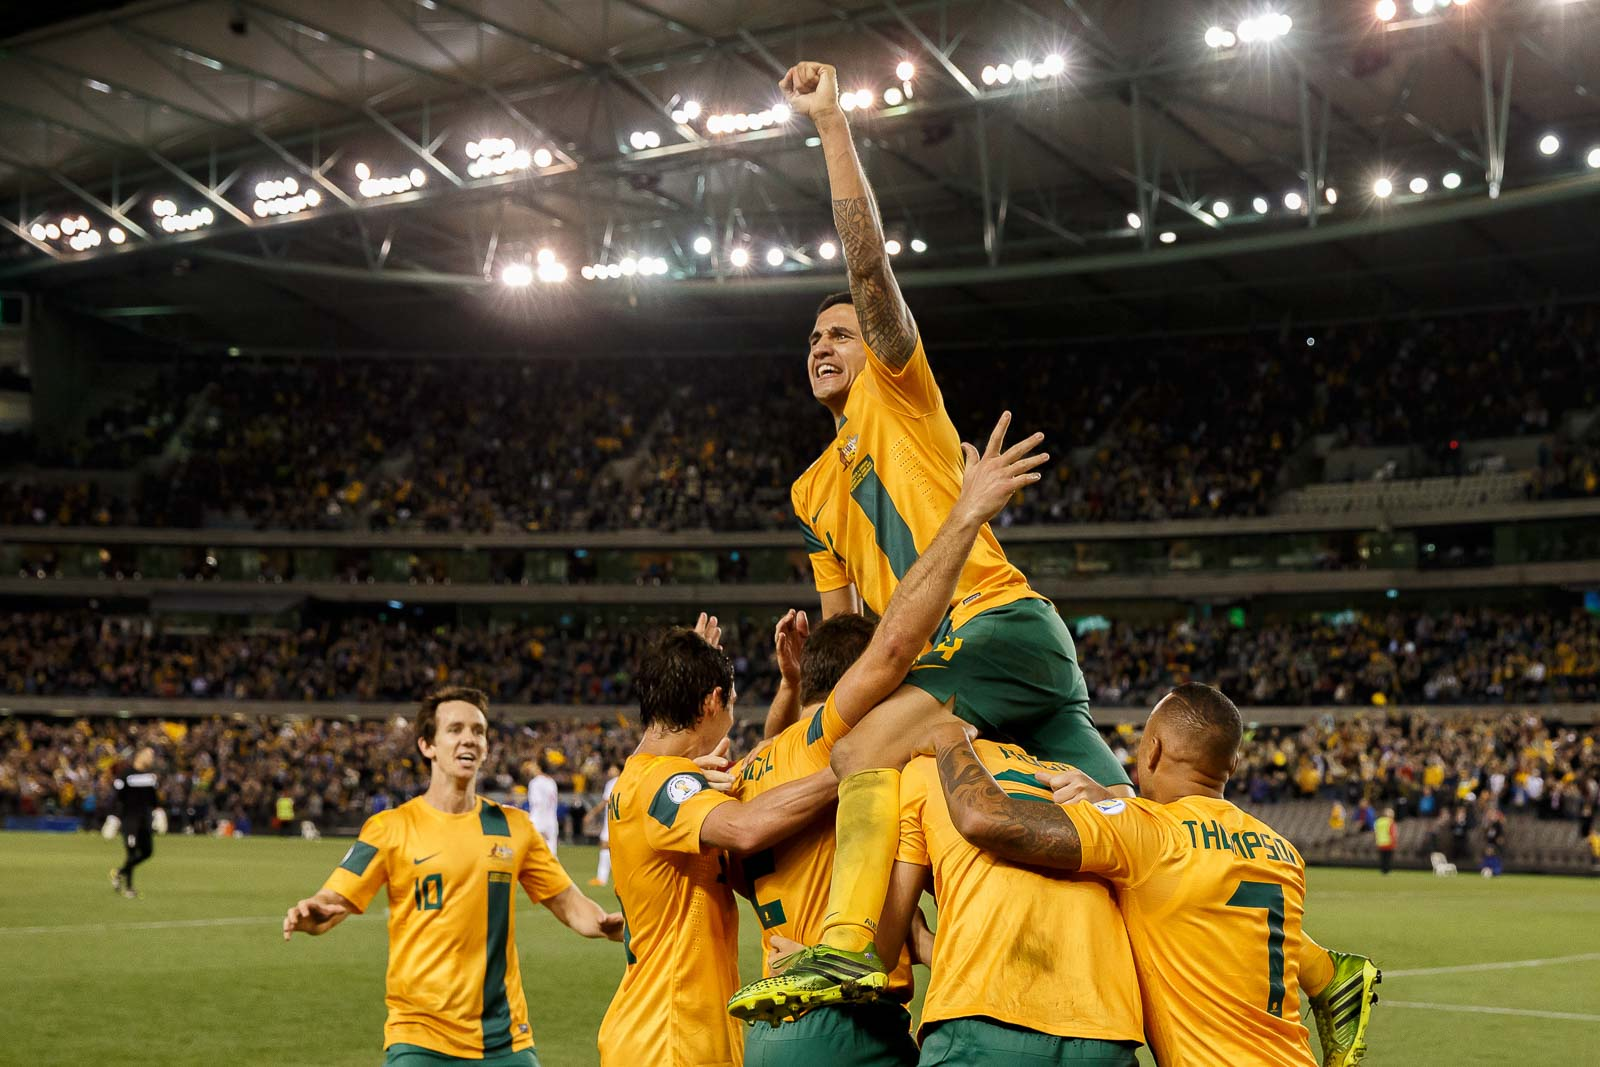 Soccer 2013 - World Cup Qualifier - Australia defeated Jordan 4-0